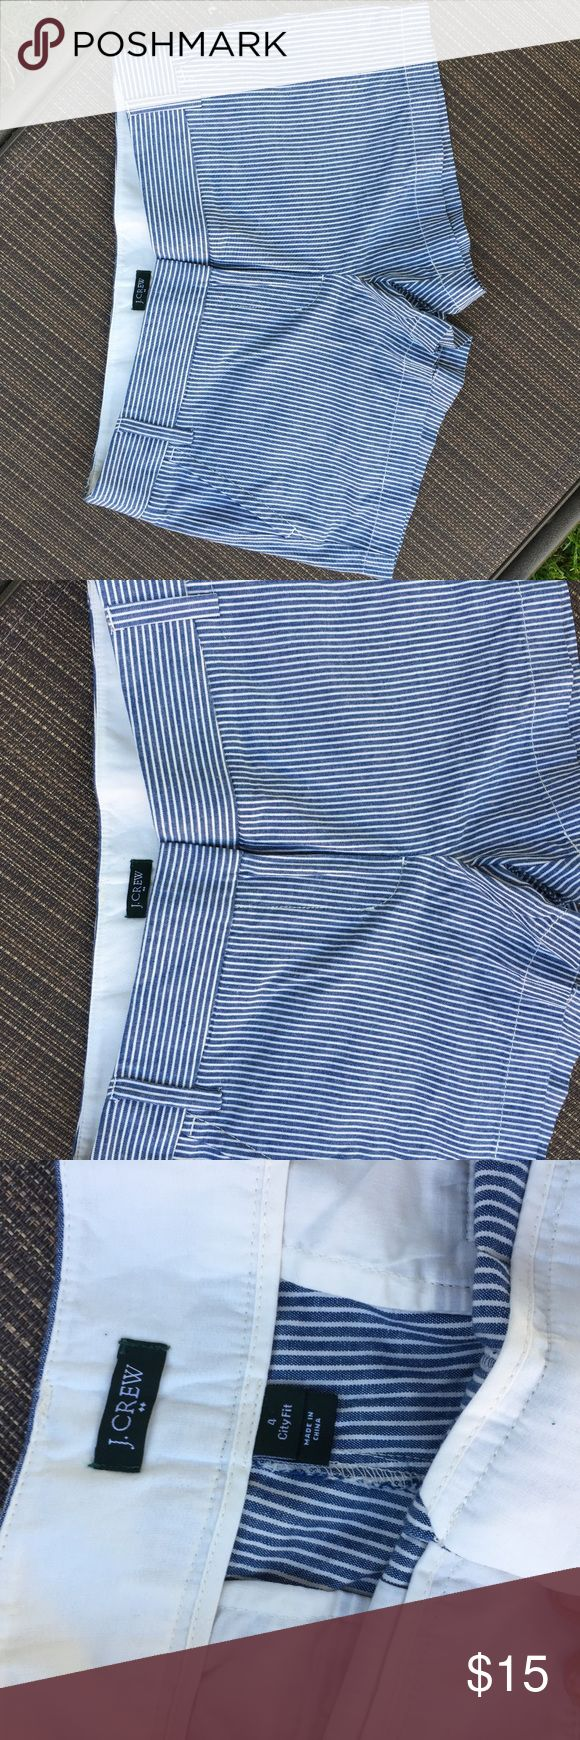 J Crew City Fit women's striped shorts size 4 Gently pre Owned stripped shorts great condition J. Crew Shorts Jean Shorts